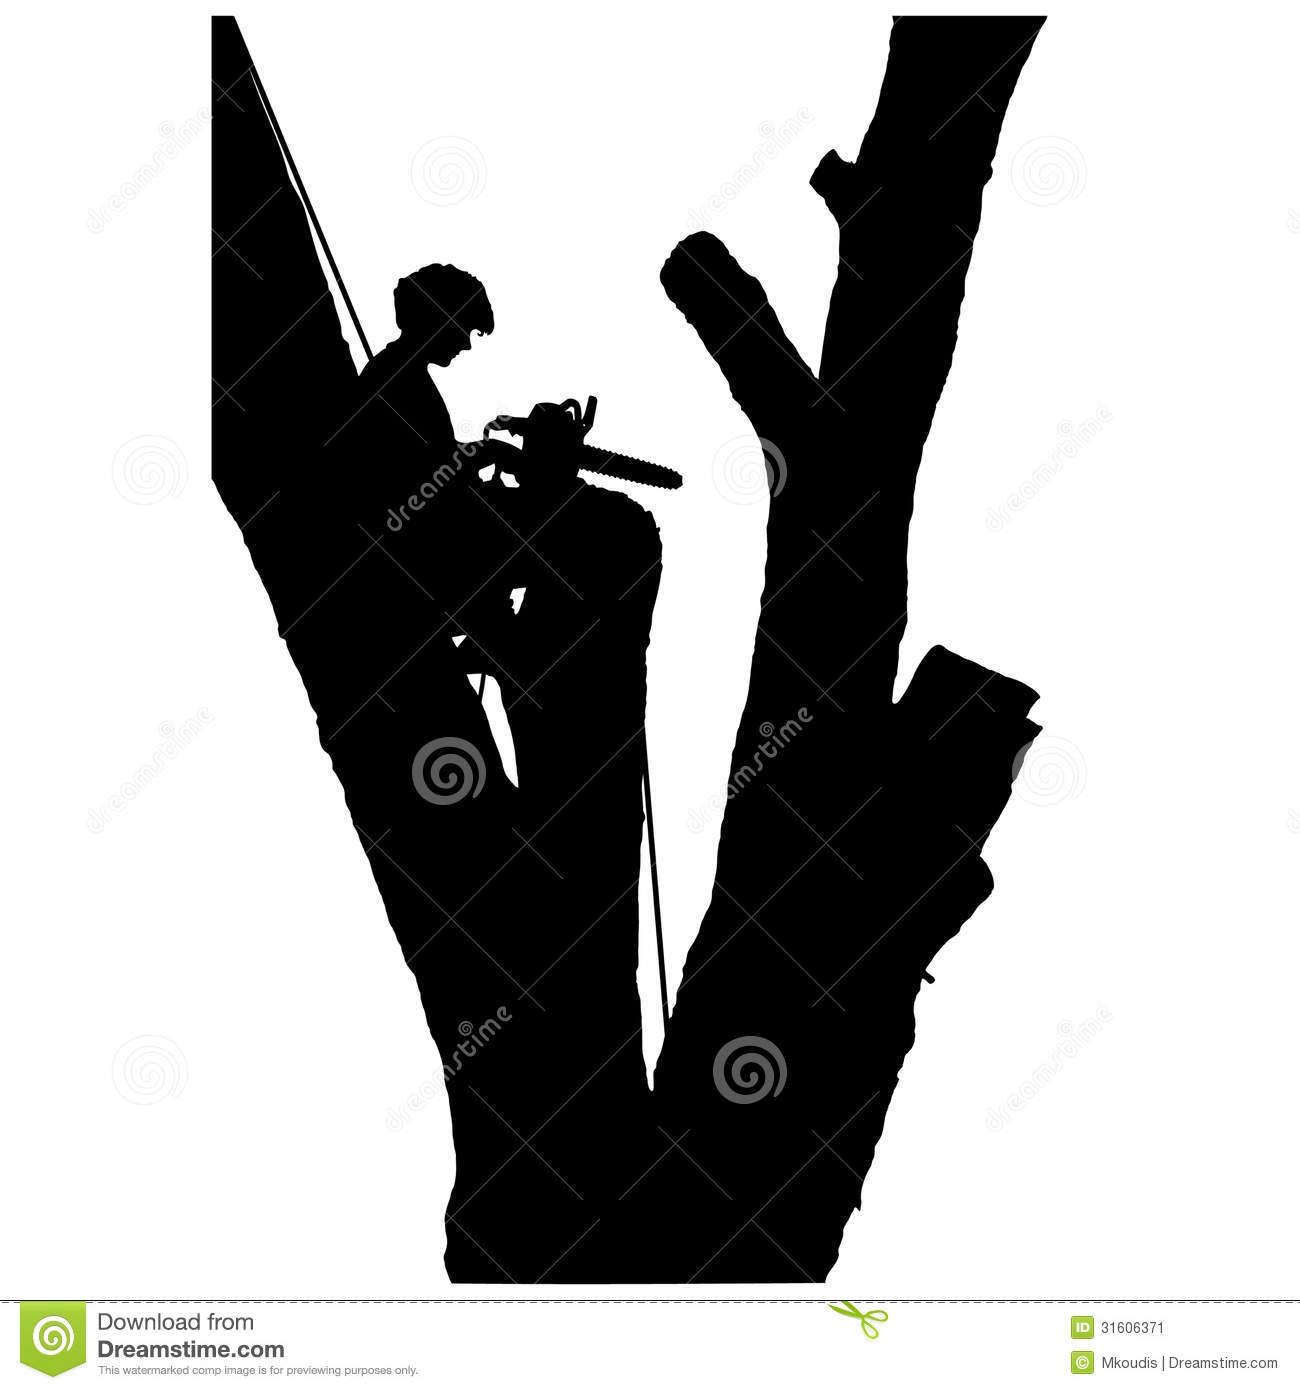 Image Result For Cutting Tree Limbs